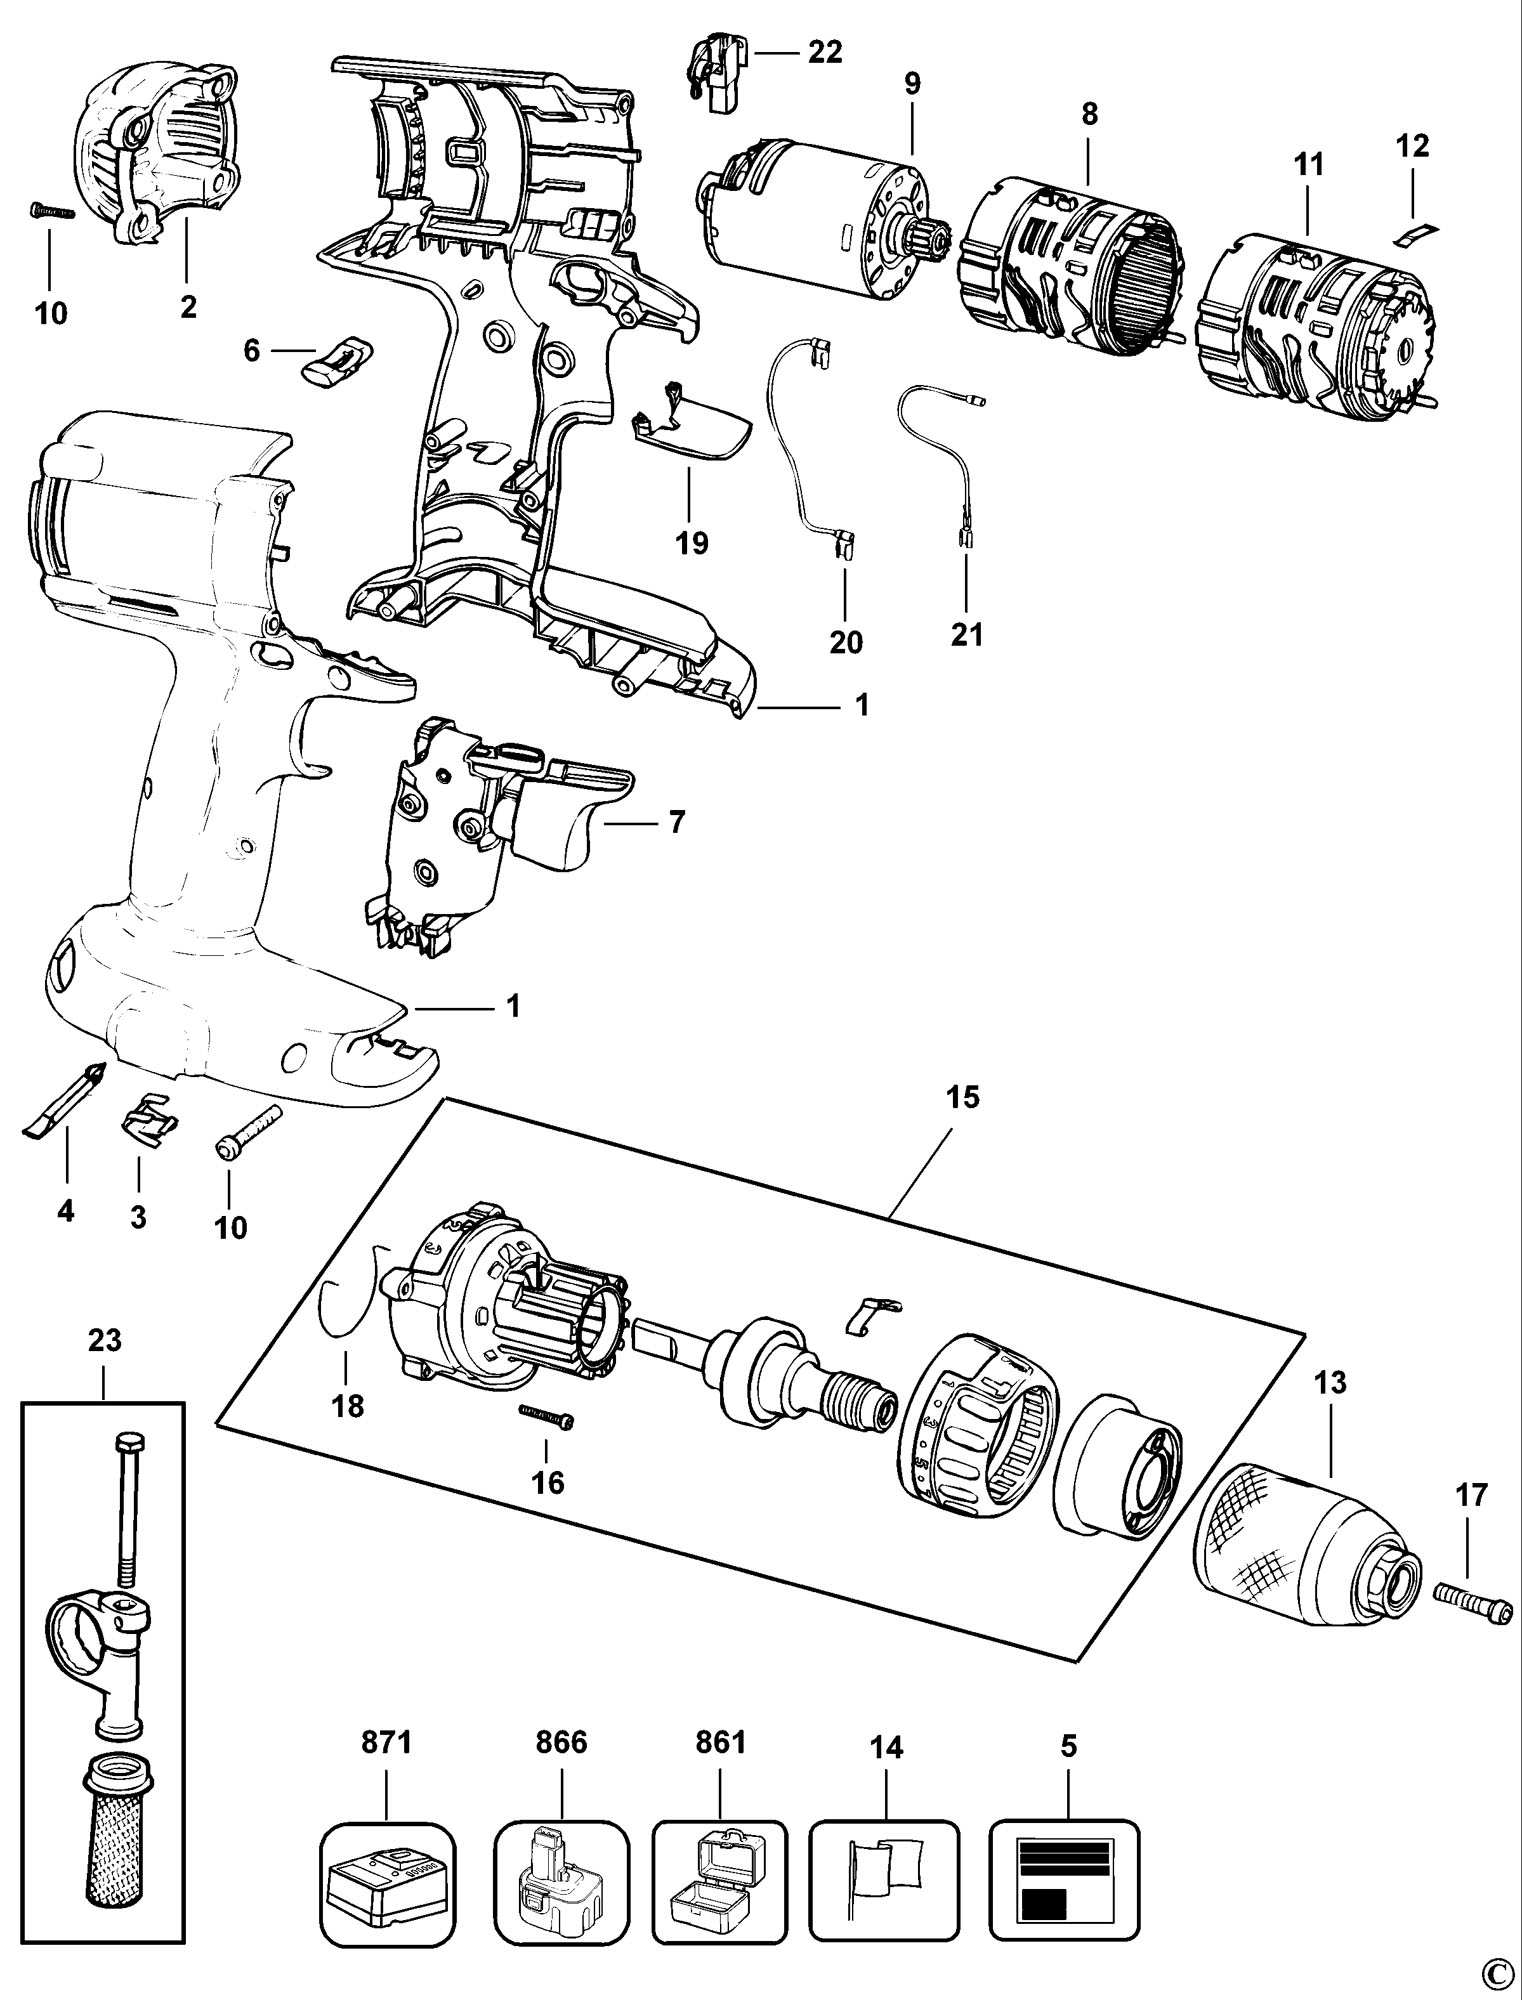 parts of a drill bit diagram 7 3 powerstroke engine wiring spares for dewalt dw987kq cordless type 1 spare